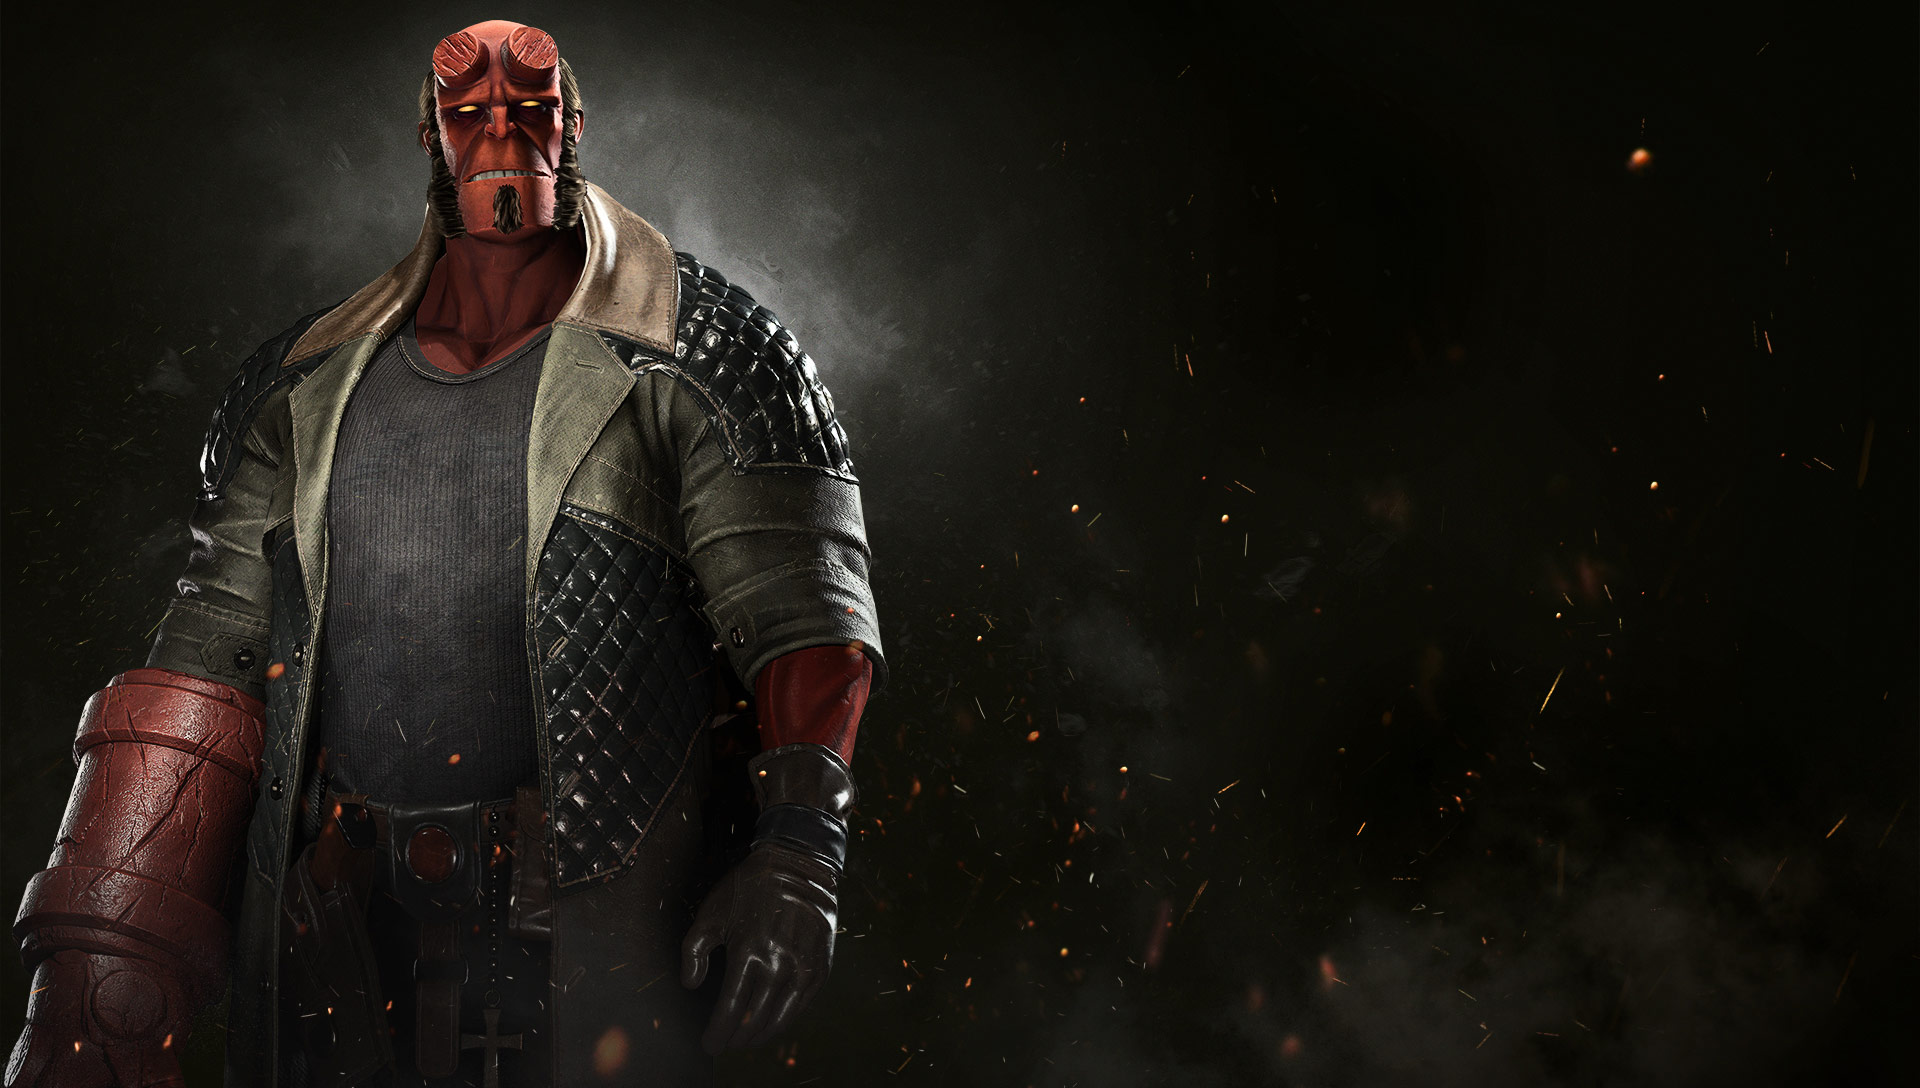 Hellboy in Injustice 2 1 out of 6 image gallery